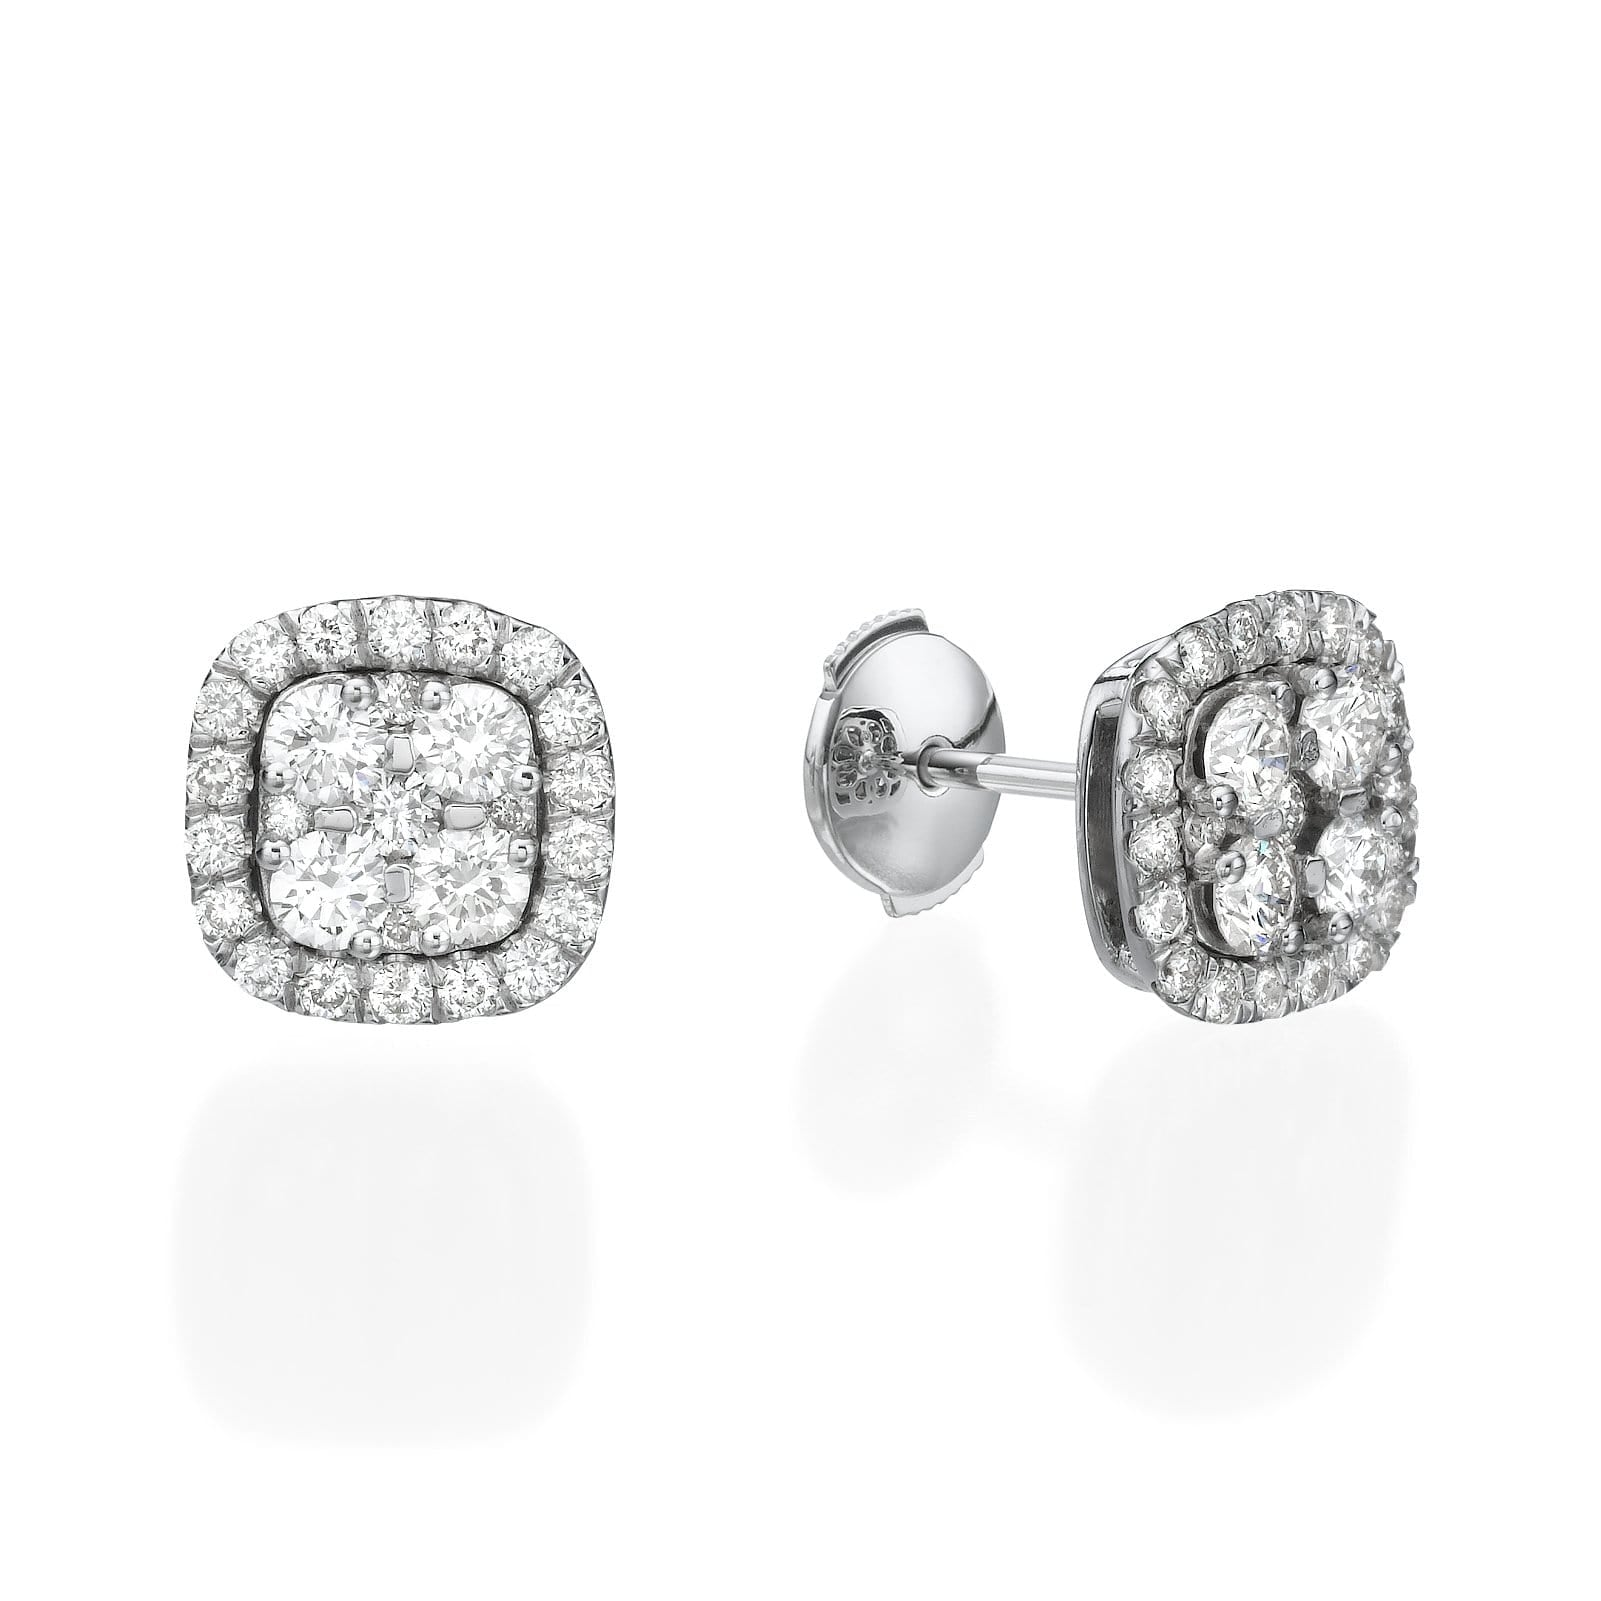 Big Cushion Shaped Diamond Cluster Earrings